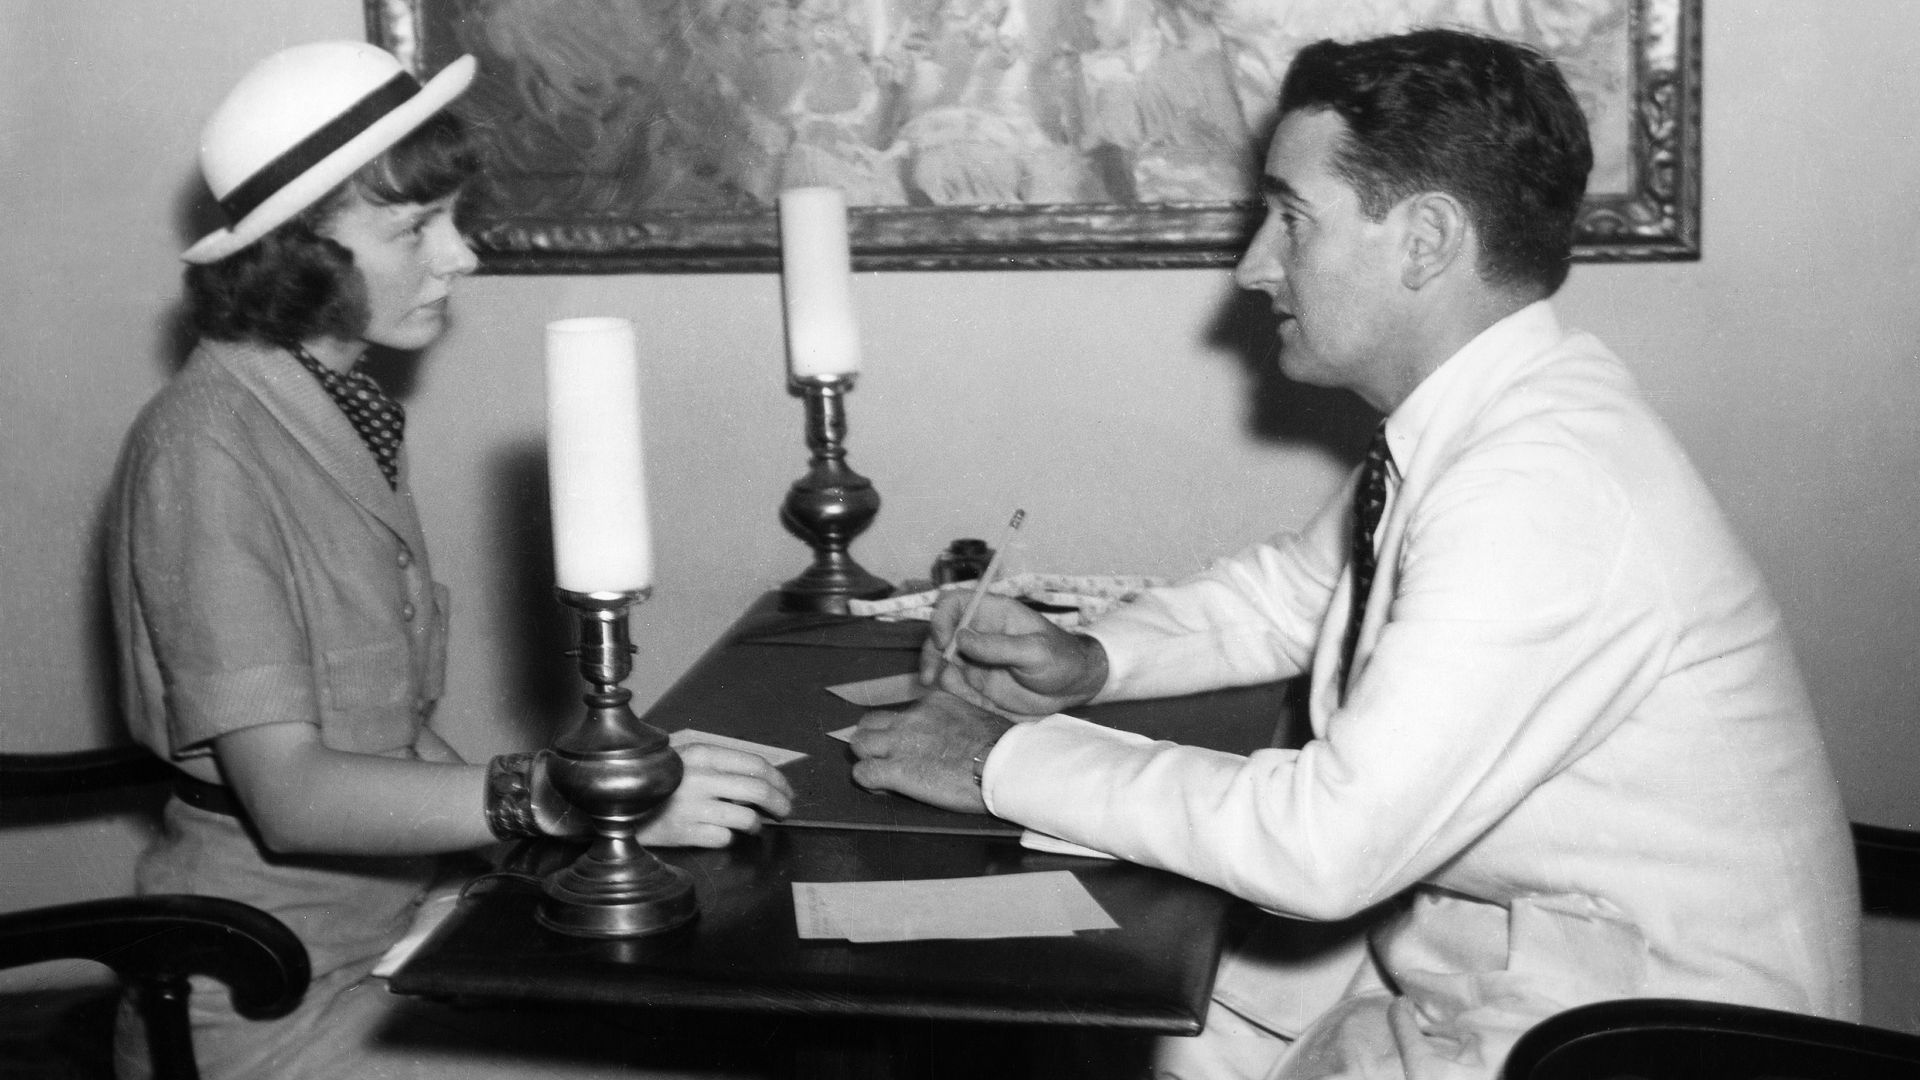 A black and white photo of a man and a woman conversing across a table